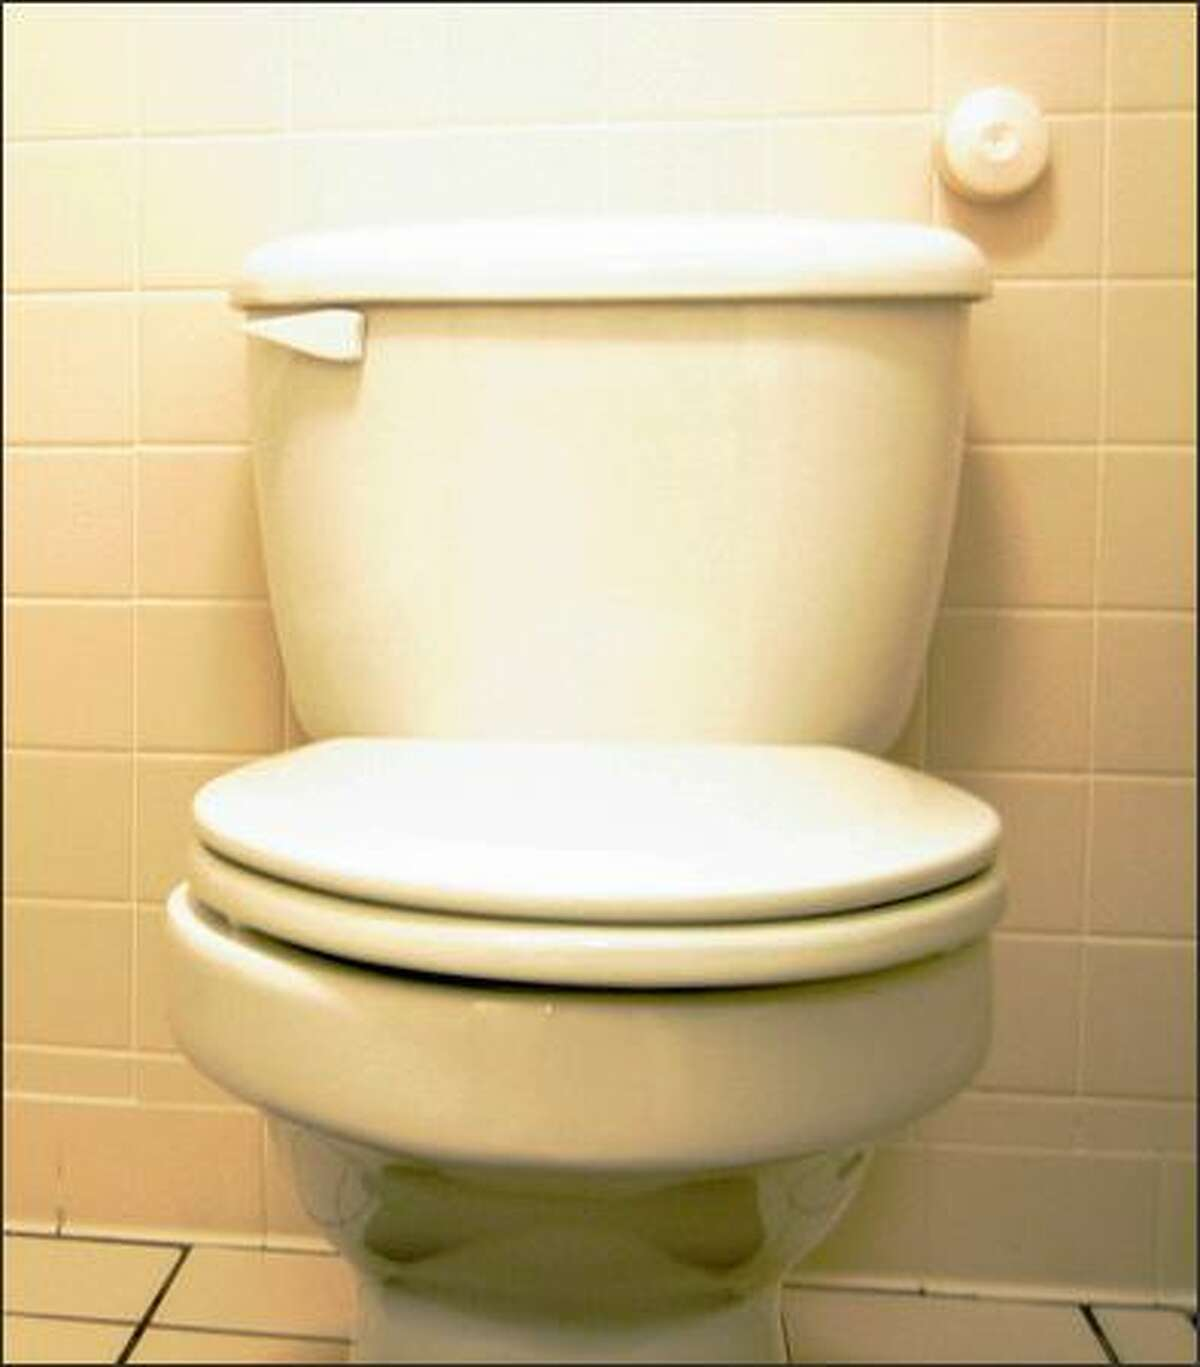 Even old toilets can save water.